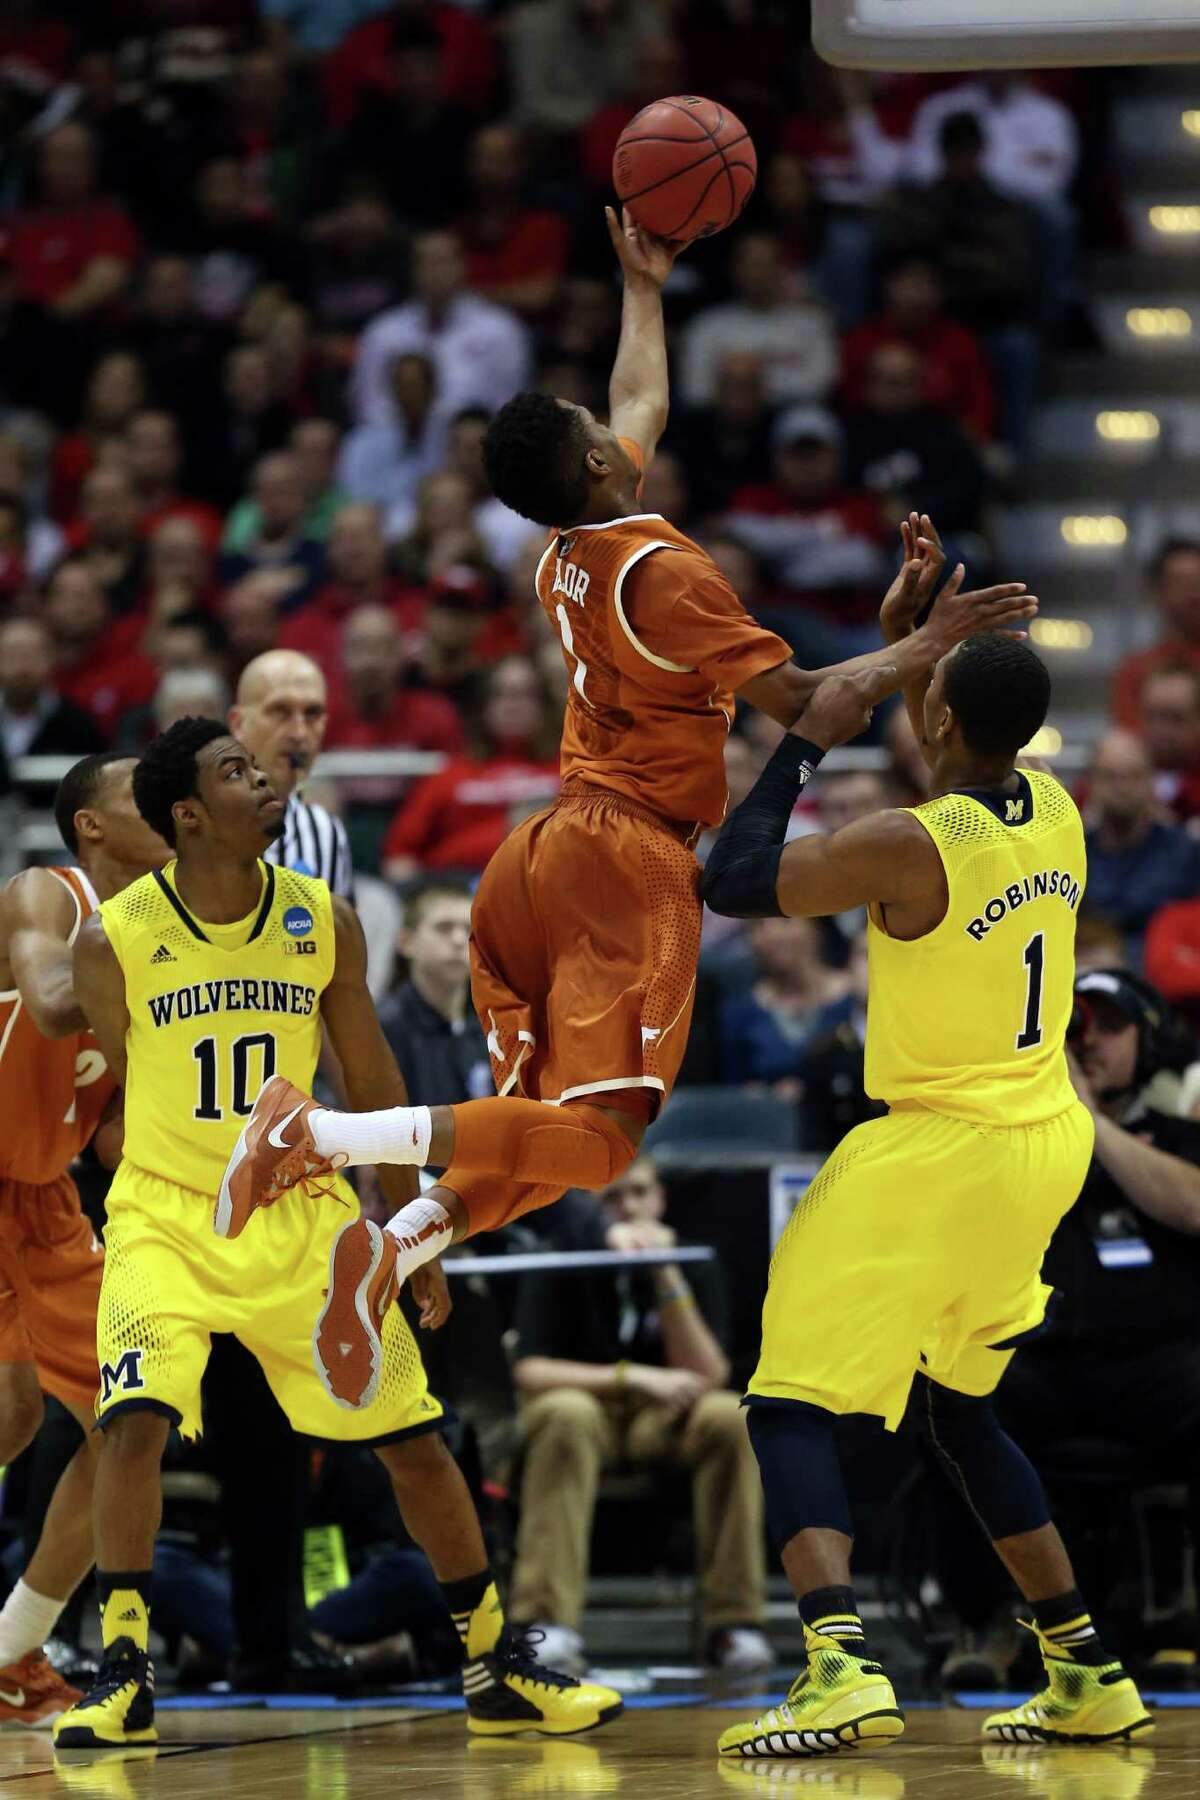 MILWAUKEE, WI - MARCH 22: Isaiah Taylor #1 of the Texas Longhorns shoots the ball over Glenn Robinson III #1 of the Michigan Wolverines during the third round of the 2014 NCAA Men's Basketball Tournament at BMO Harris Bradley Center on March 22, 2014 in Milwaukee, Wisconsin.